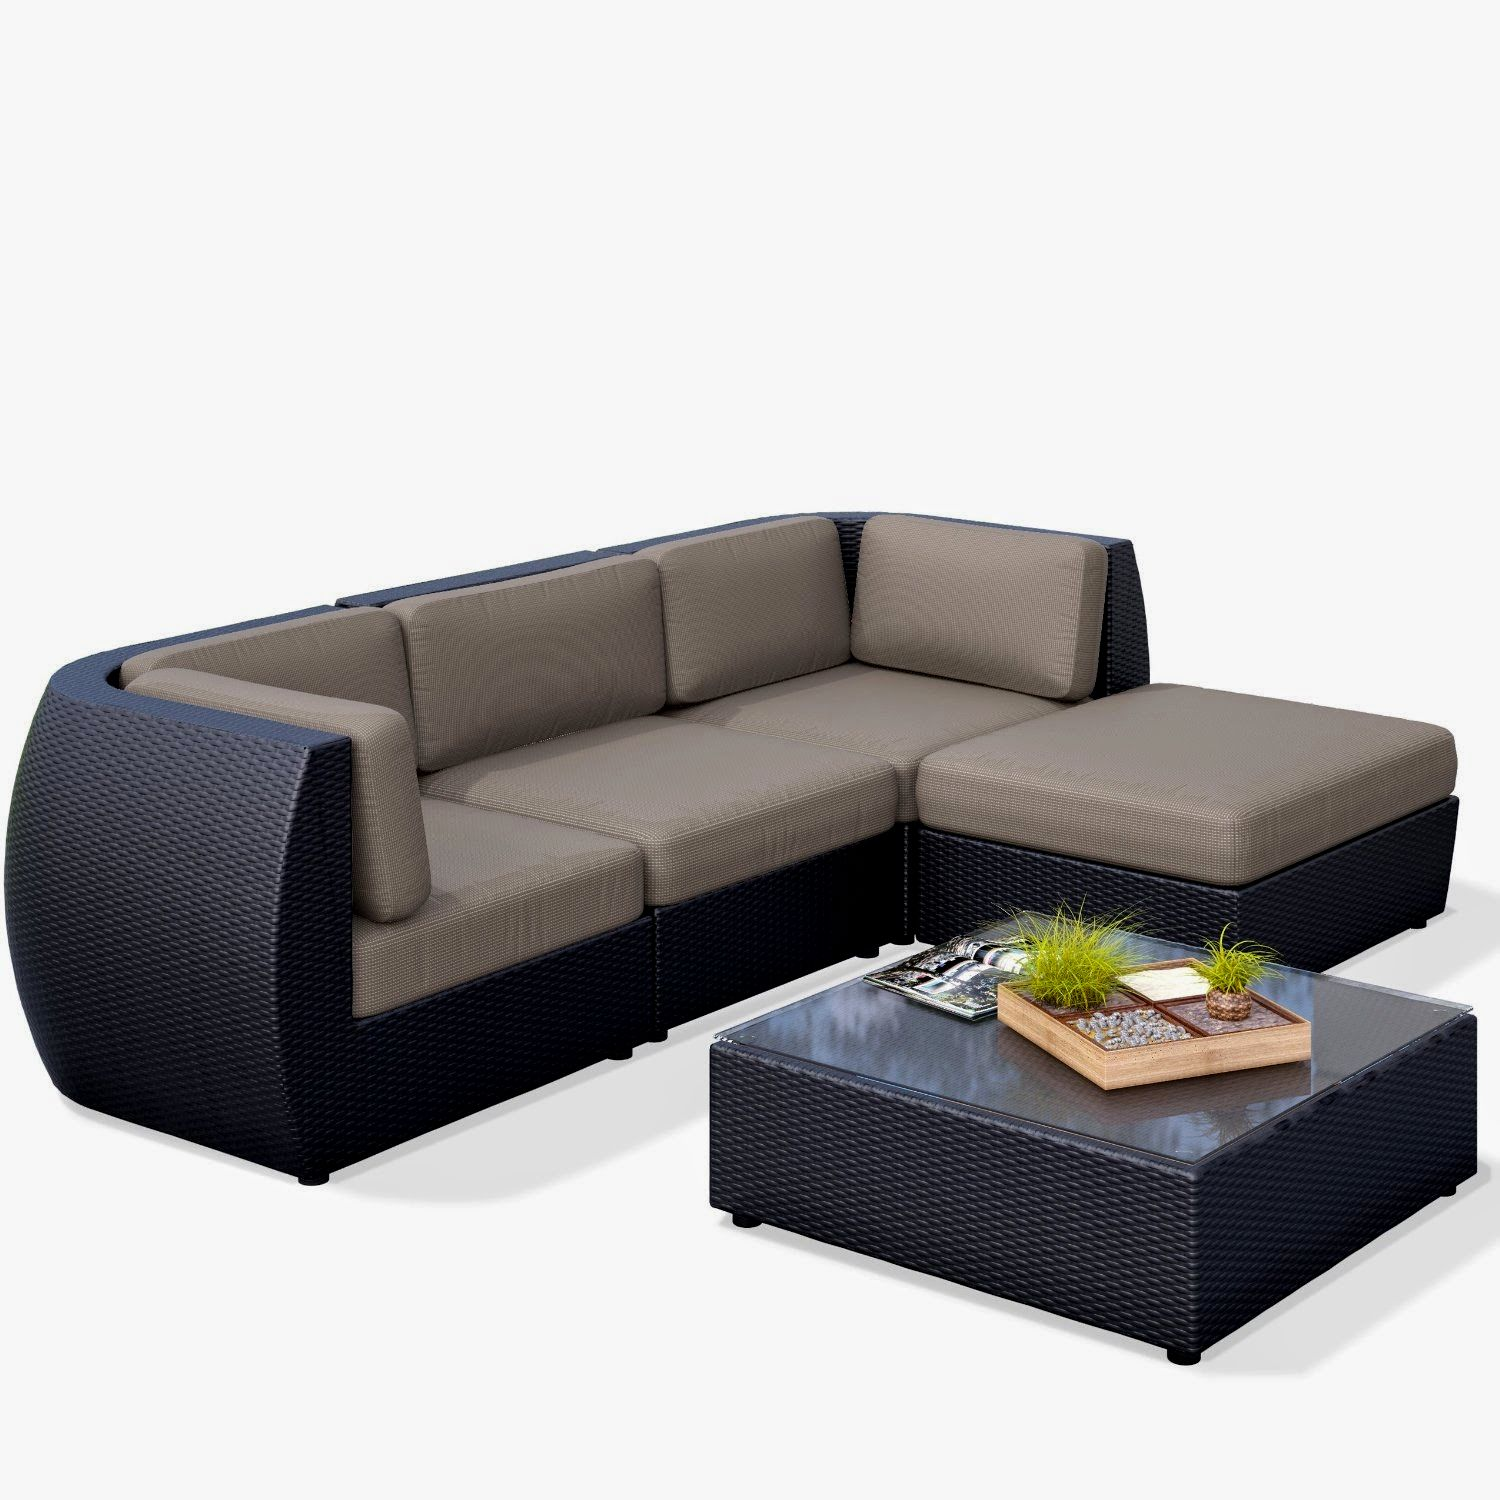 excellent outdoor sectional sofa image-Stylish Outdoor Sectional sofa Design